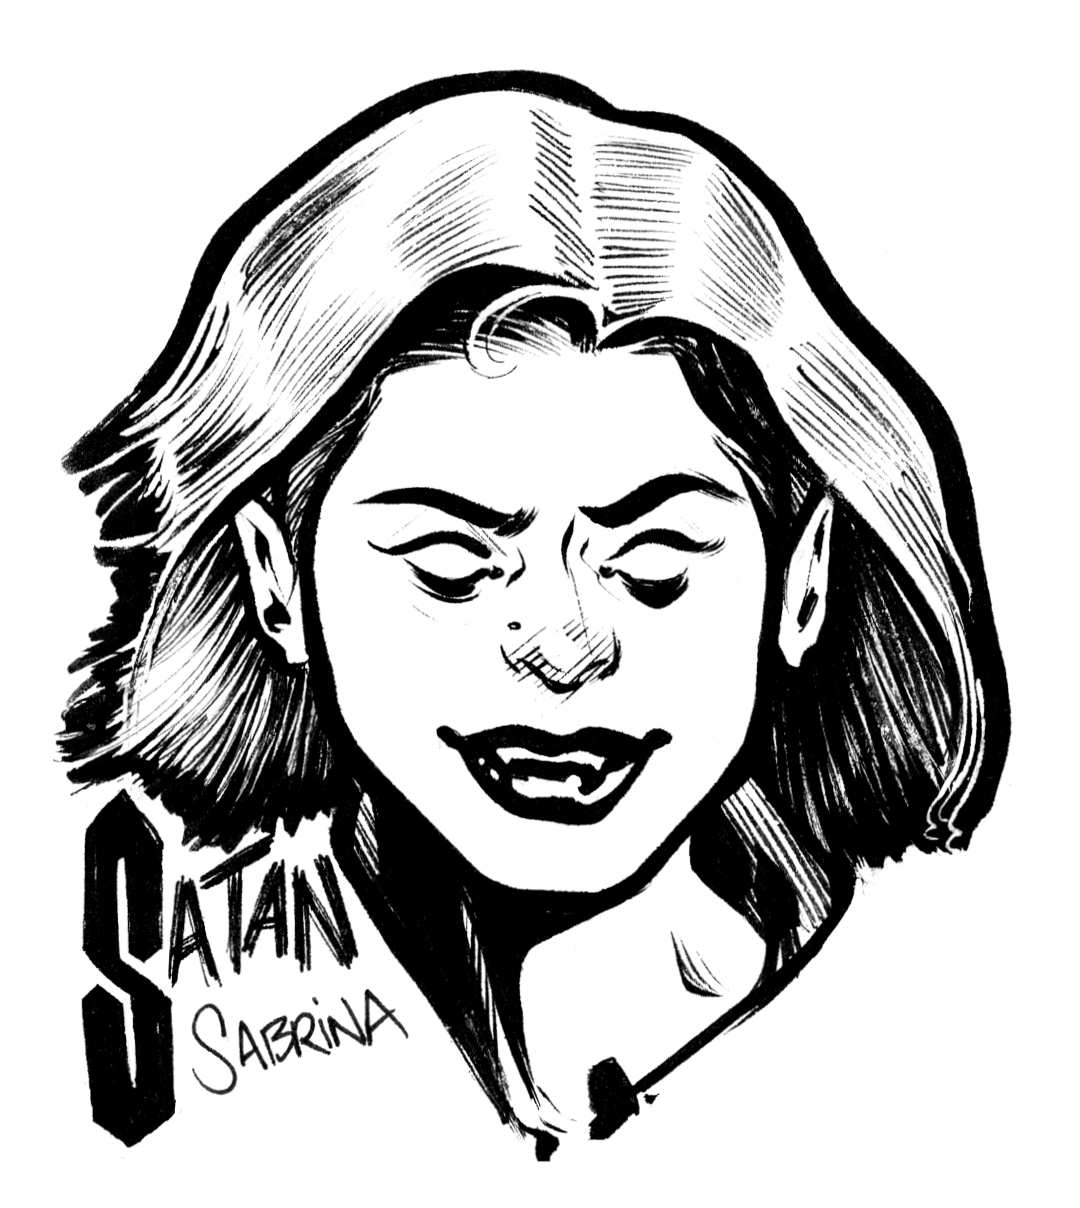 the chilling adventures of Sabrina satan satanic illustration pen and ink